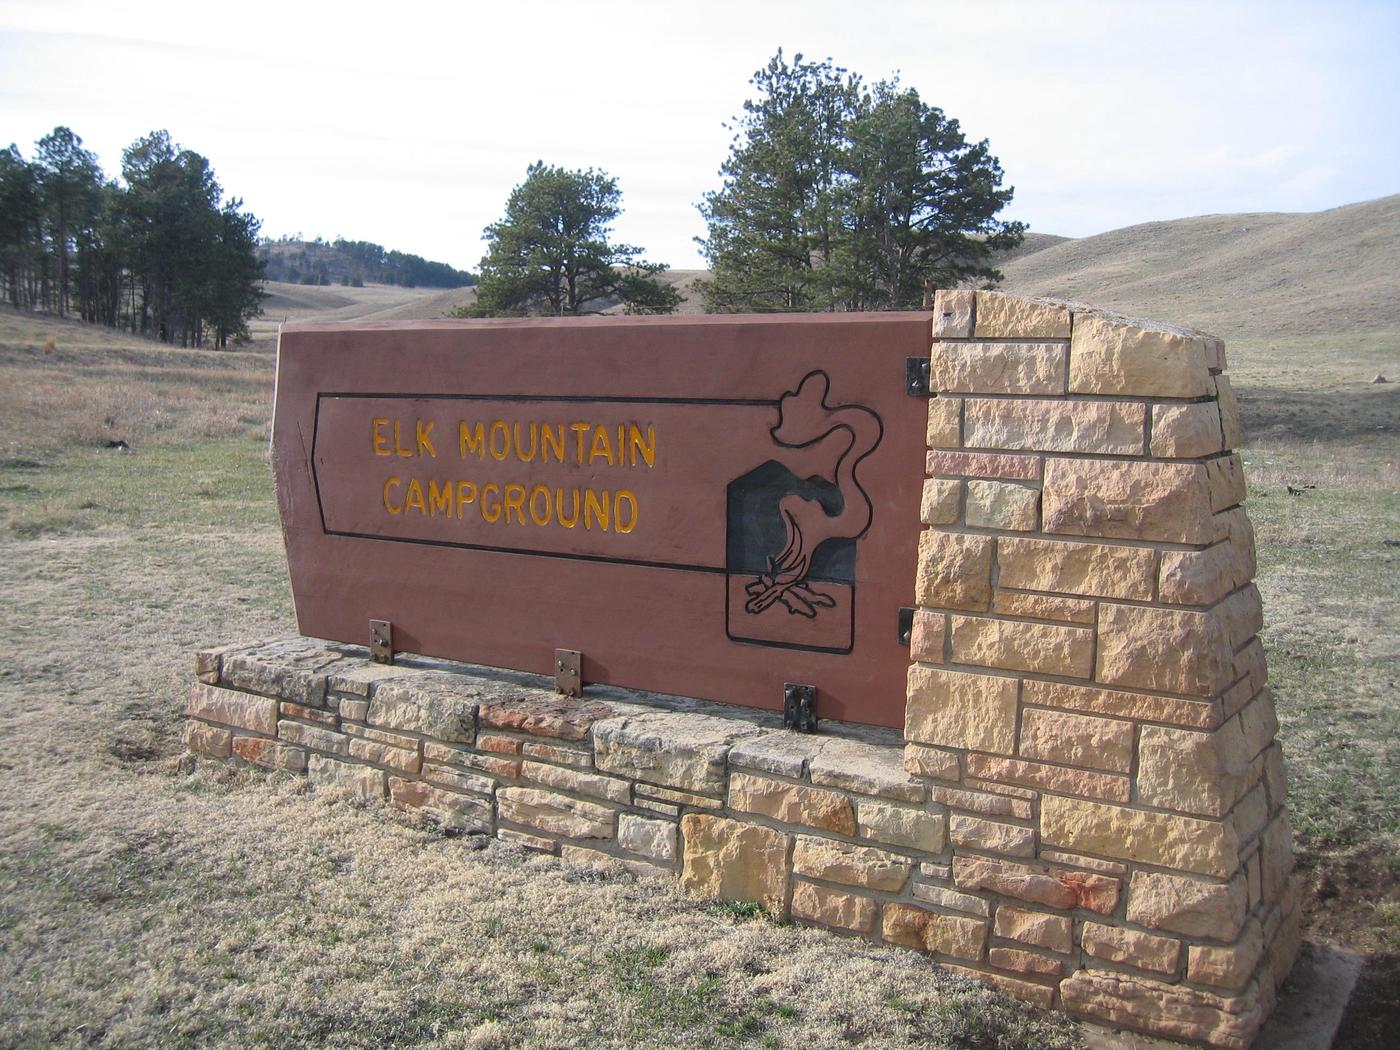 Elk Mountain Campground SignThe Elk Mountain Campground is located just 1/2 mile from the visitor center.